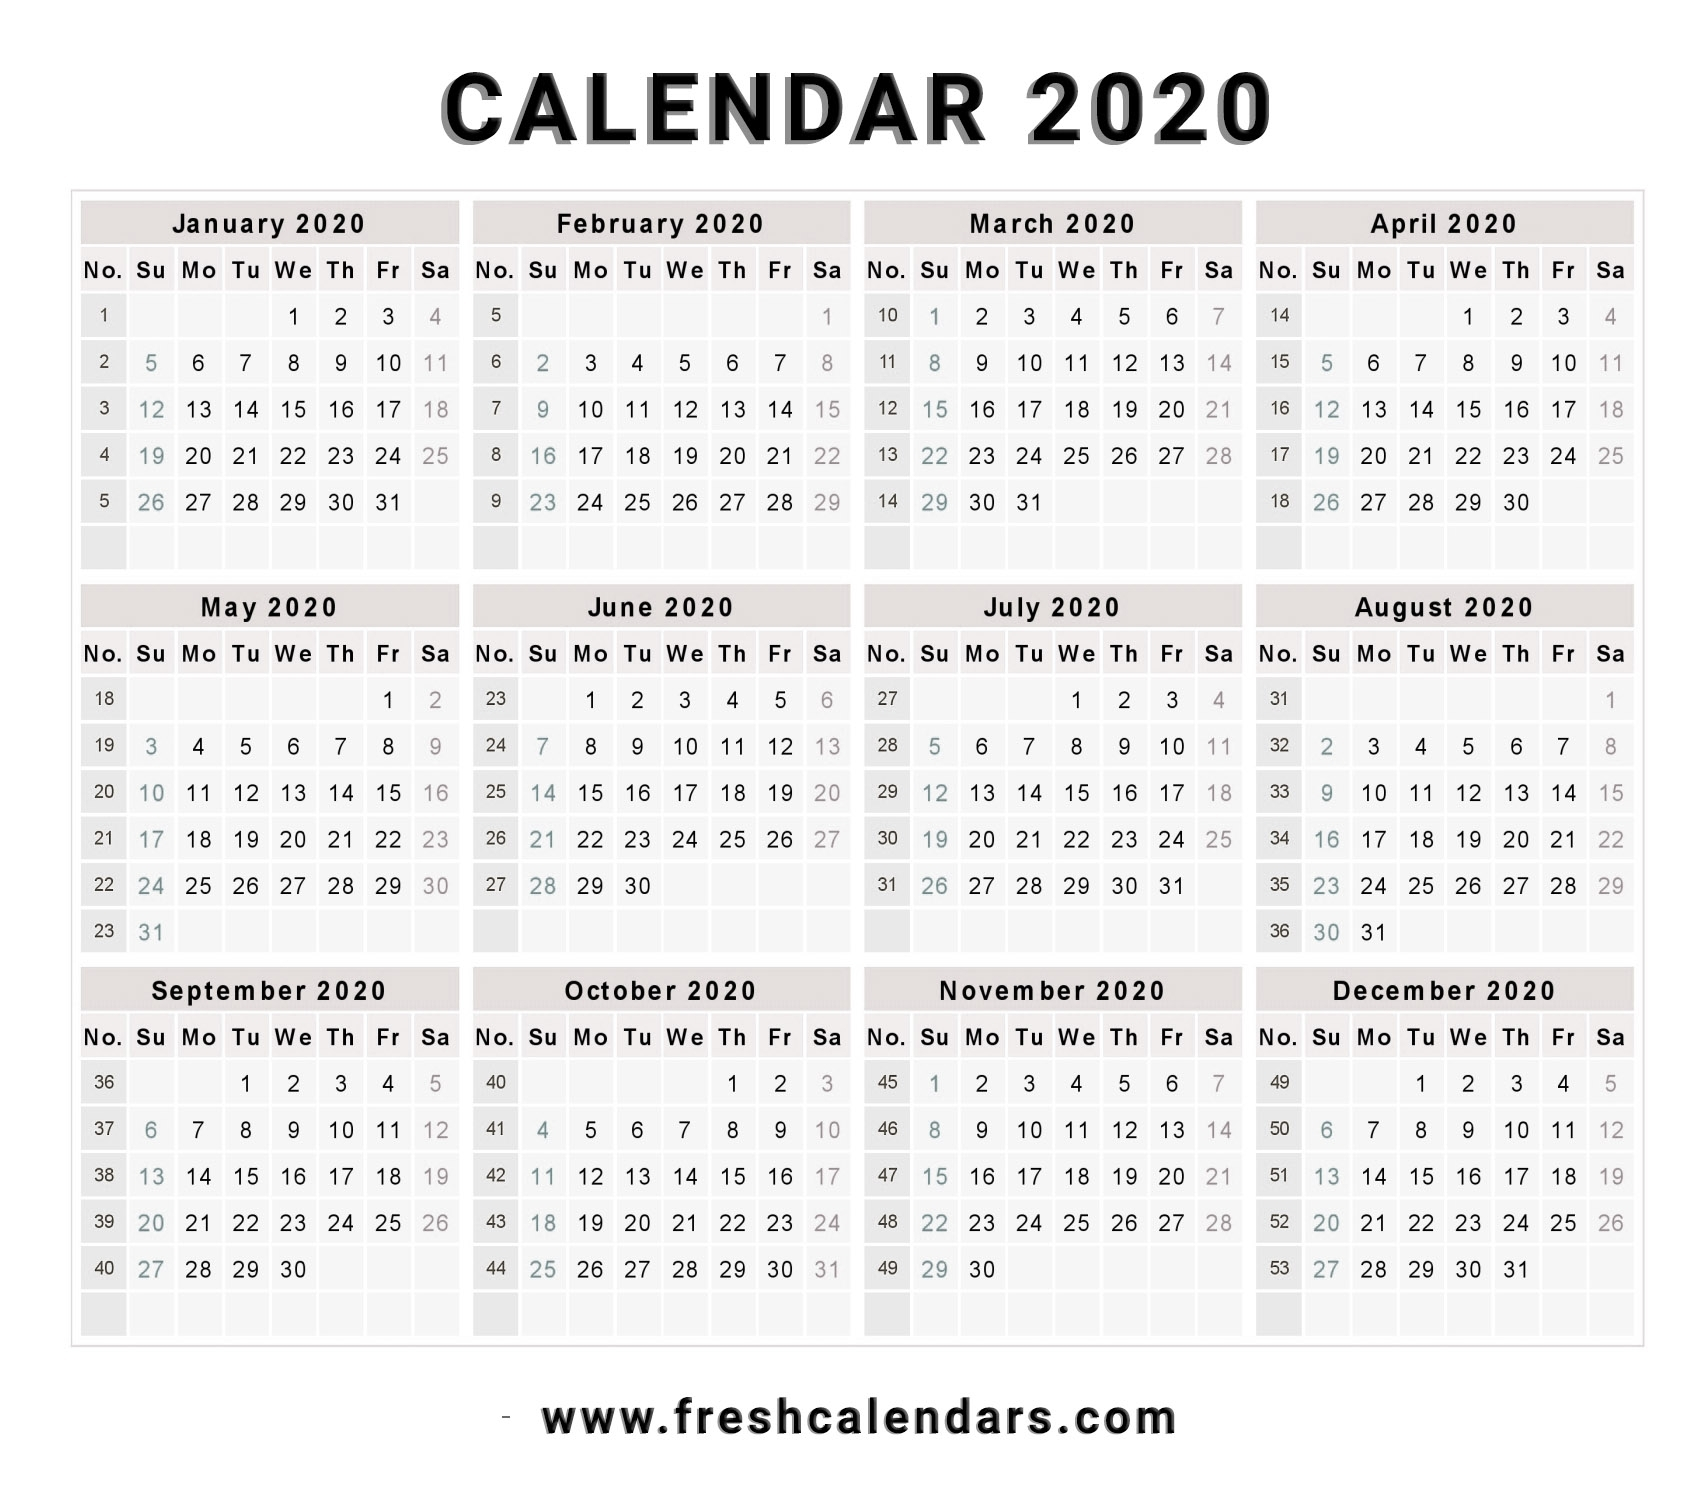 2020 Calendar with regard to 2020 Free Printable Calendars Without Downloading